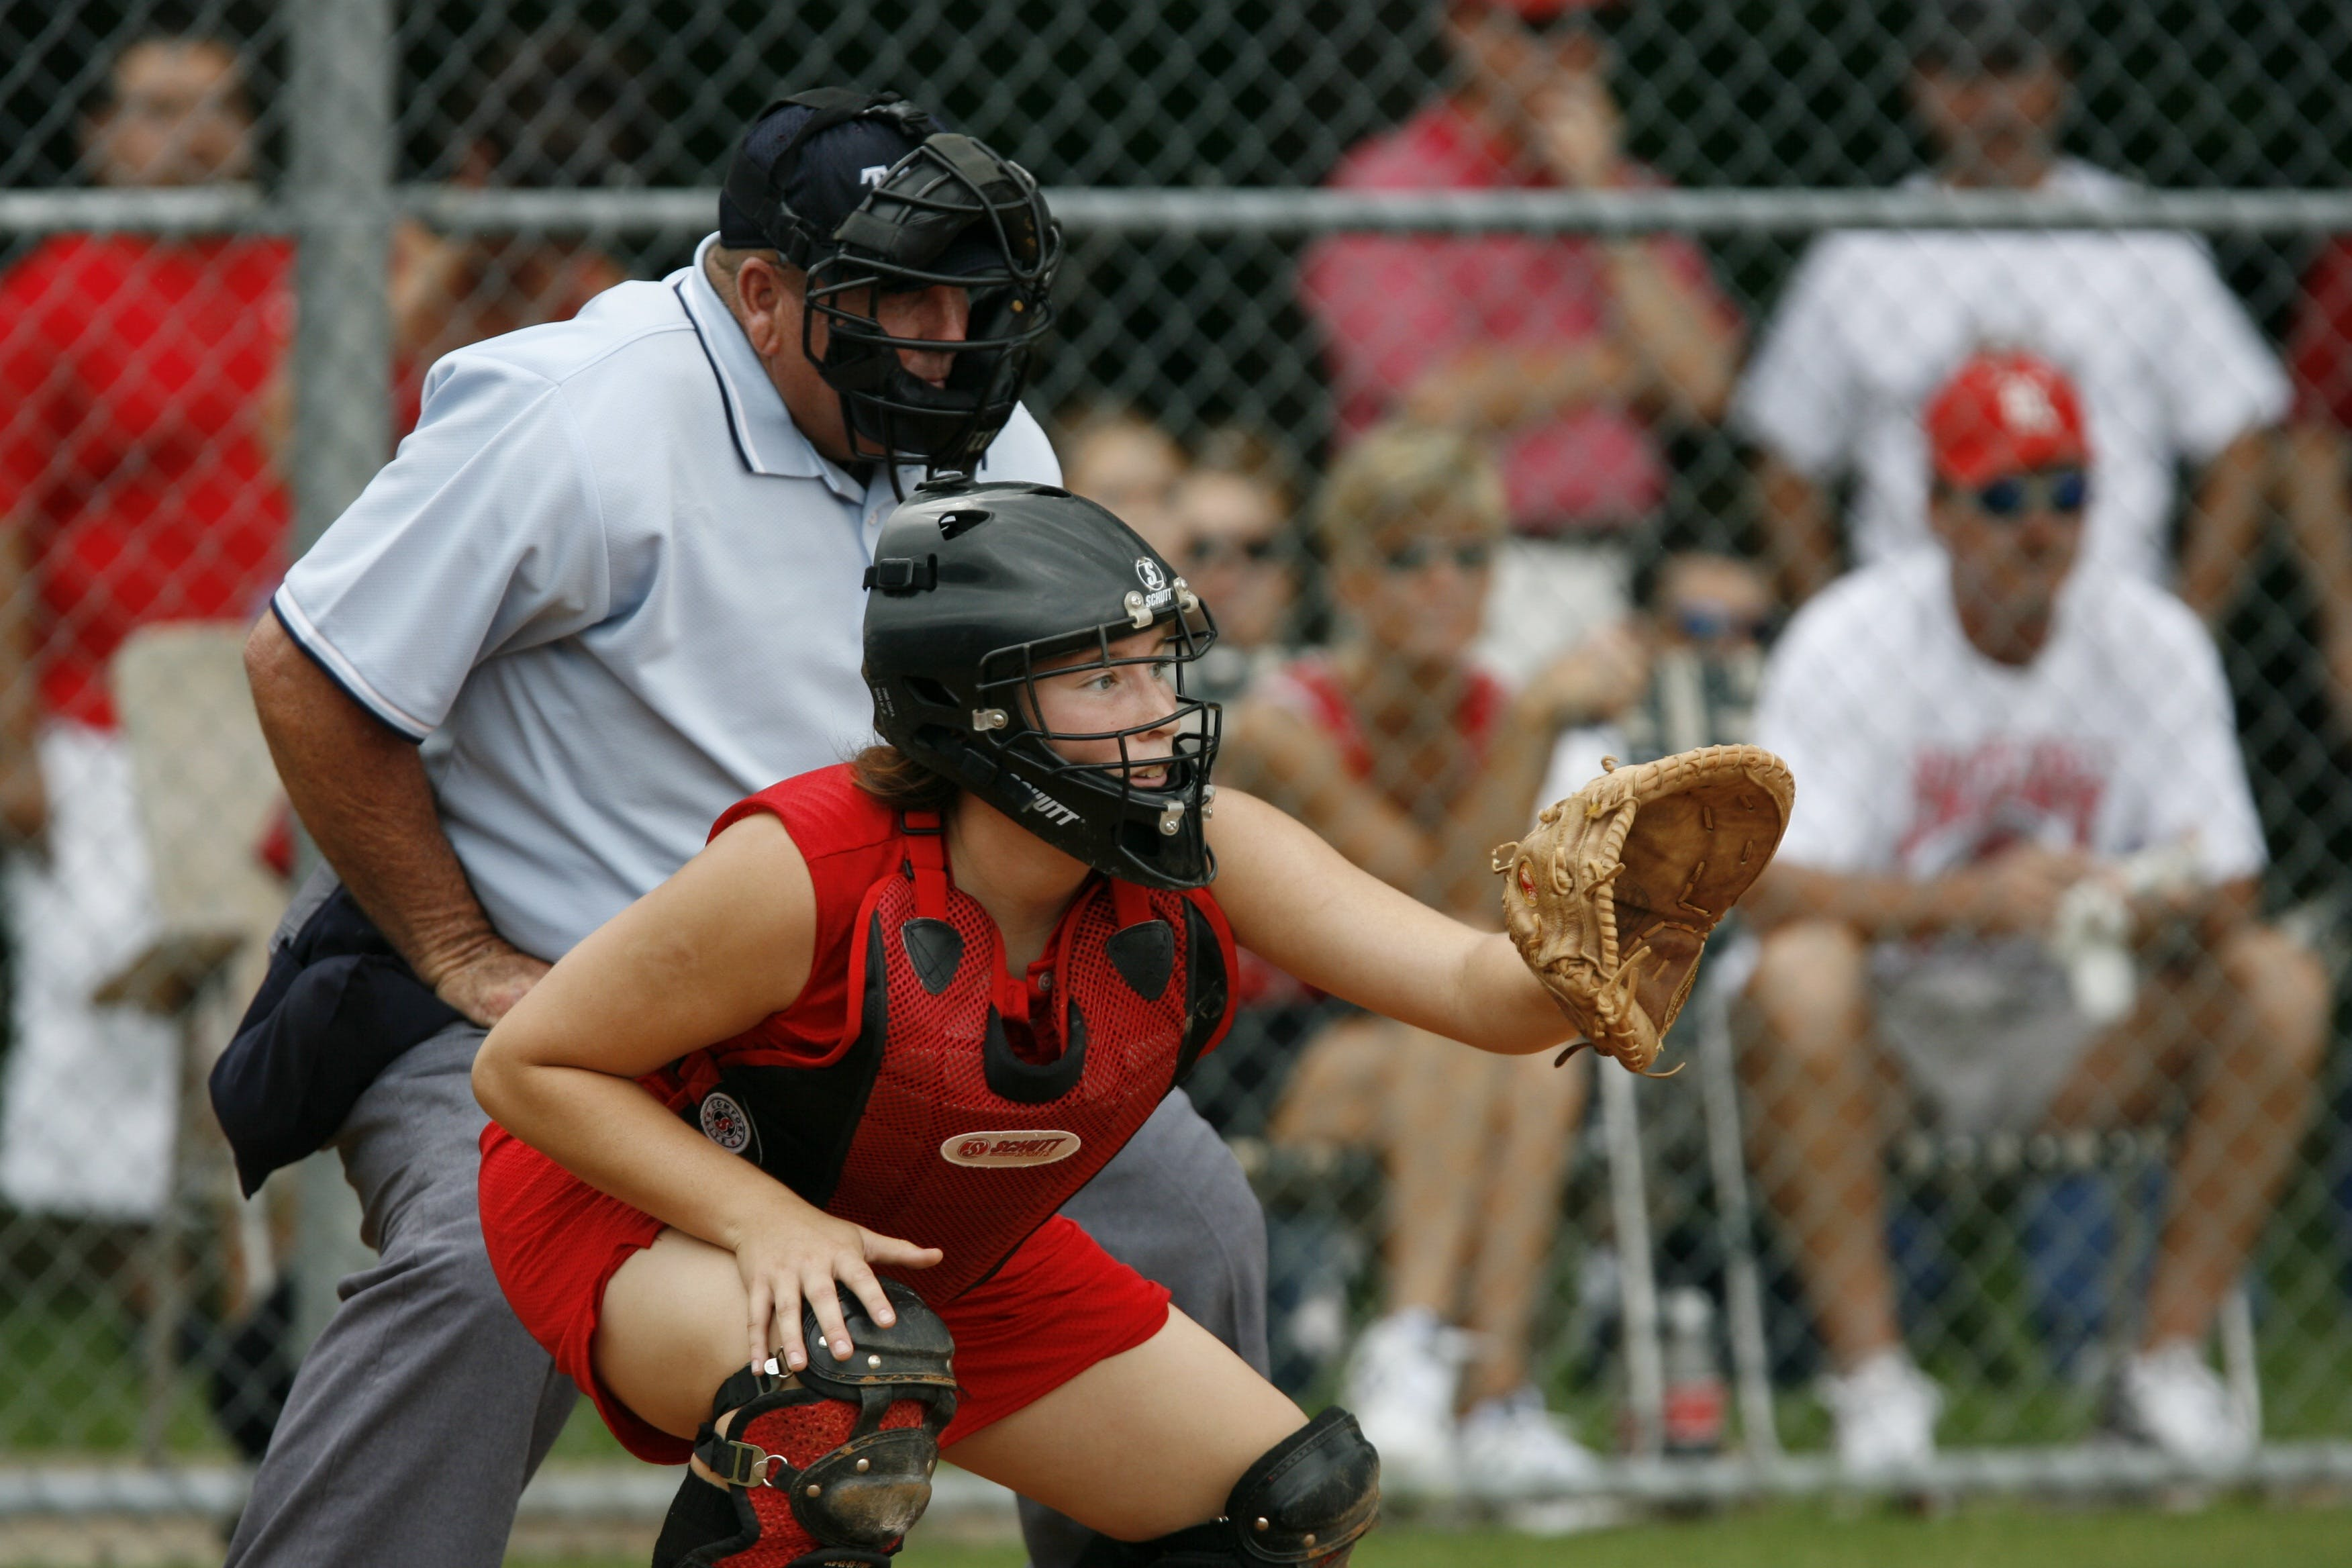 Baseball Catcher Position